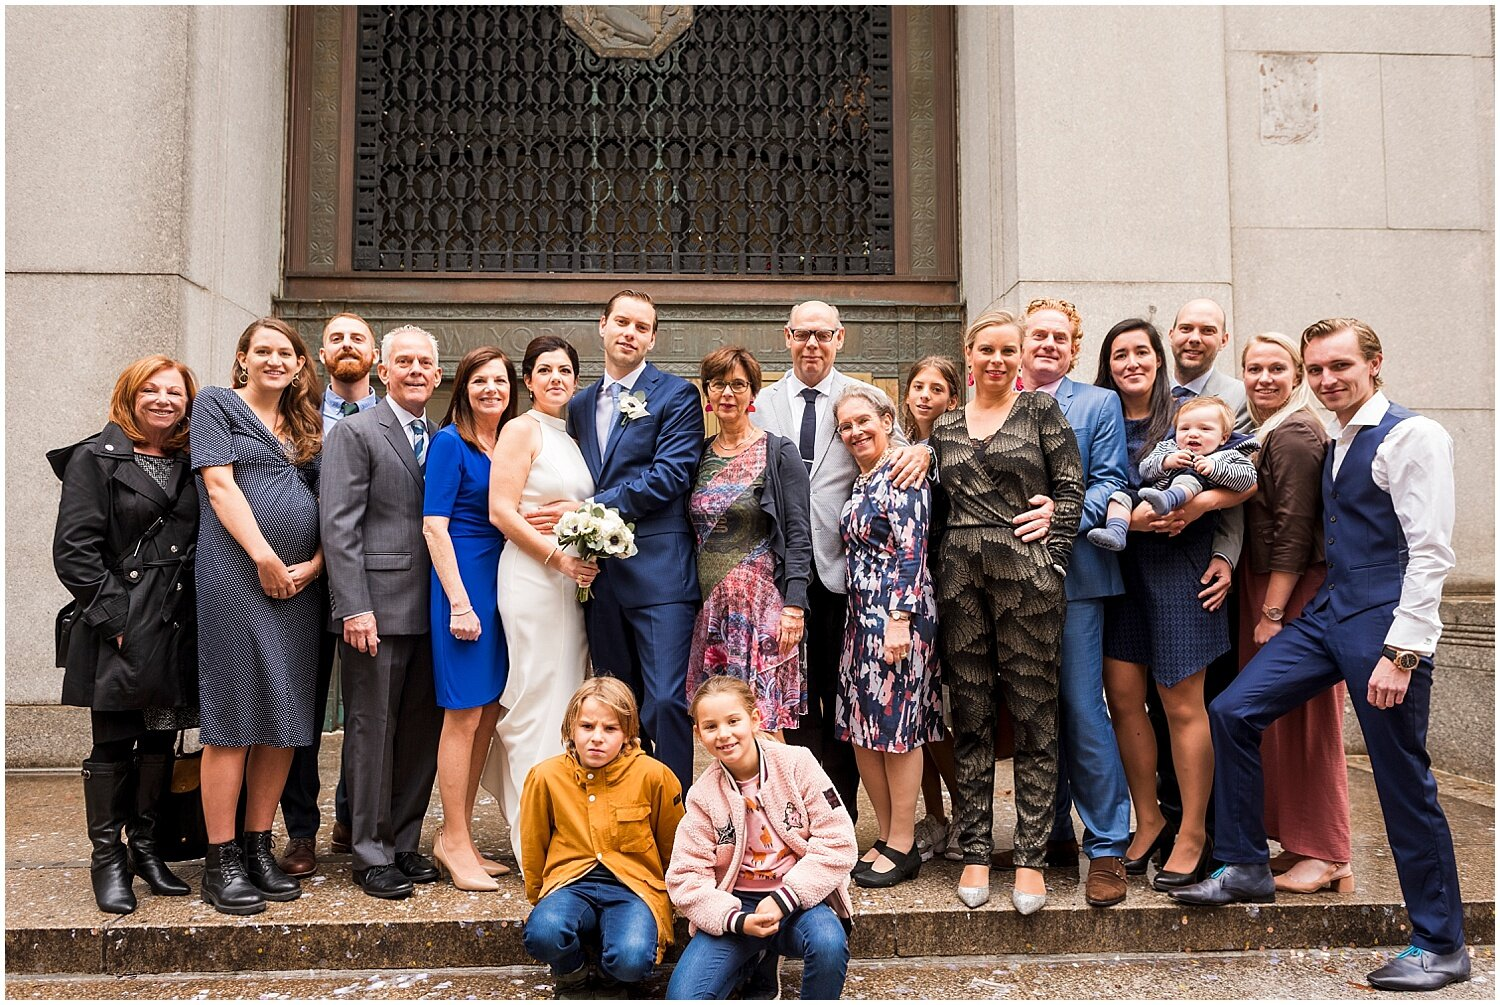 NYC-City-Hall-Courthouse-Elopement-Photographer-Apollo-Fields-016.jpg